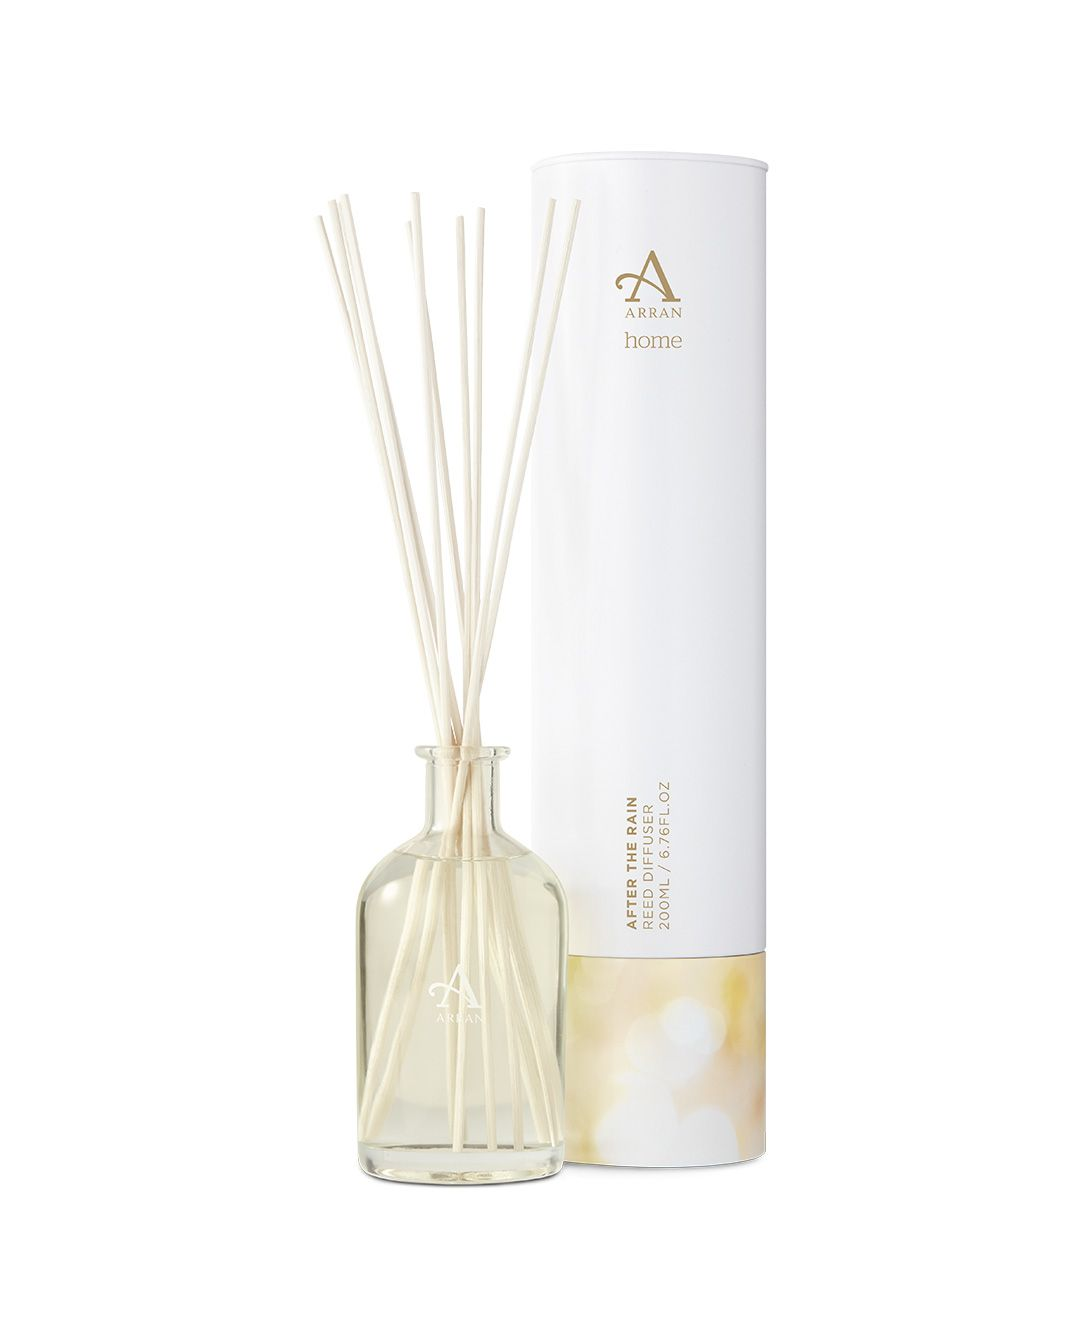 Image of Arran Aromatics After the Rain Reed Diffuser